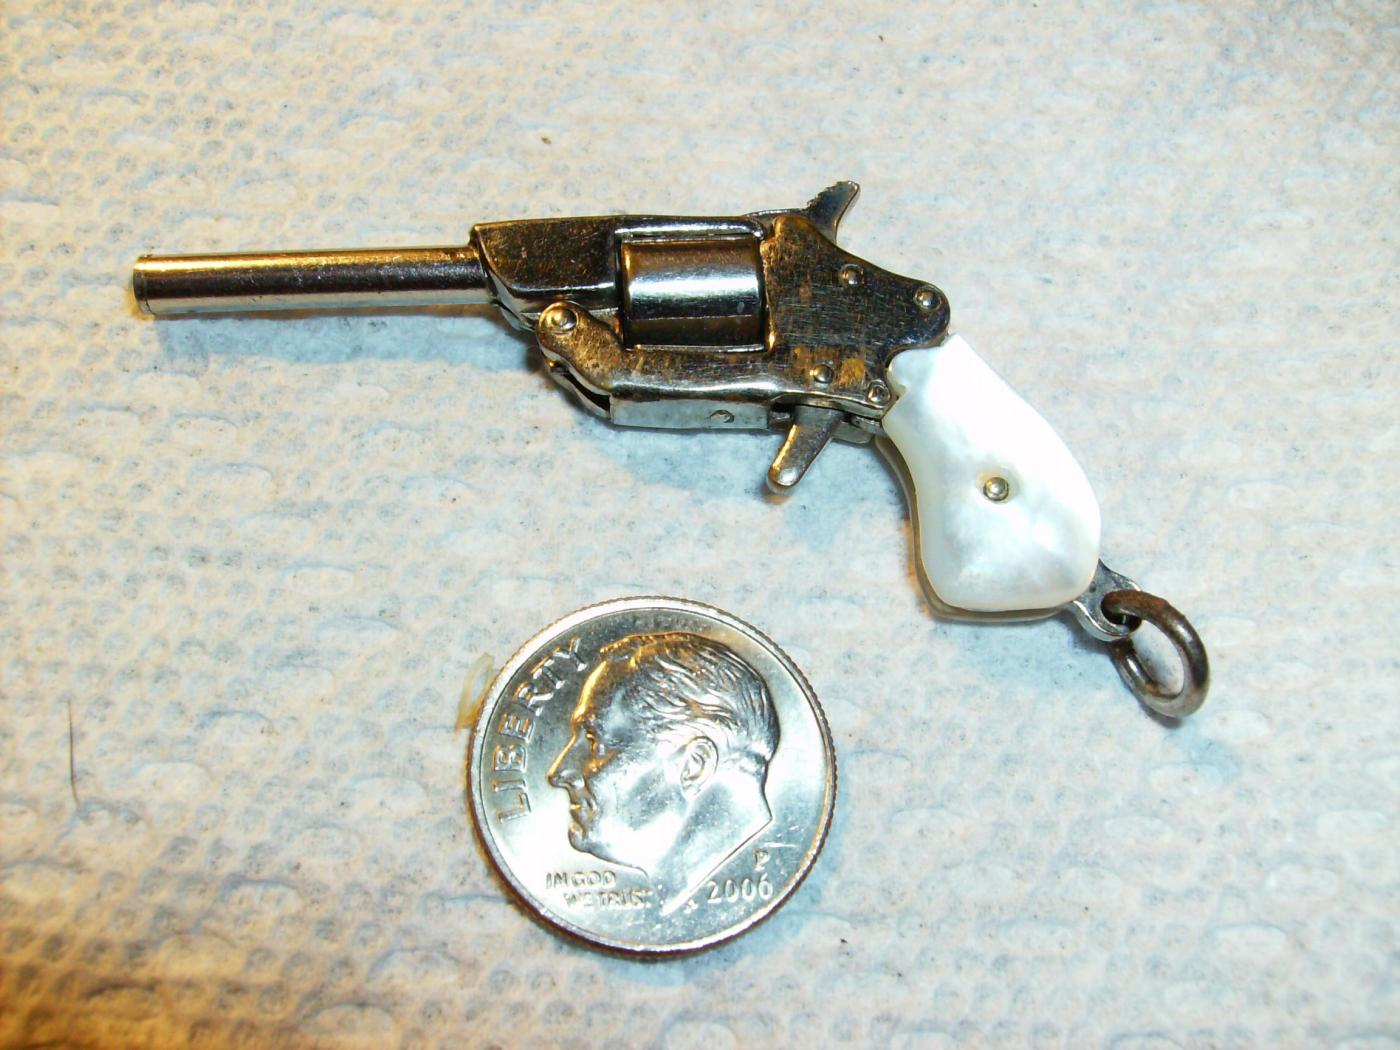 What's the current value of this miniature antique pistol